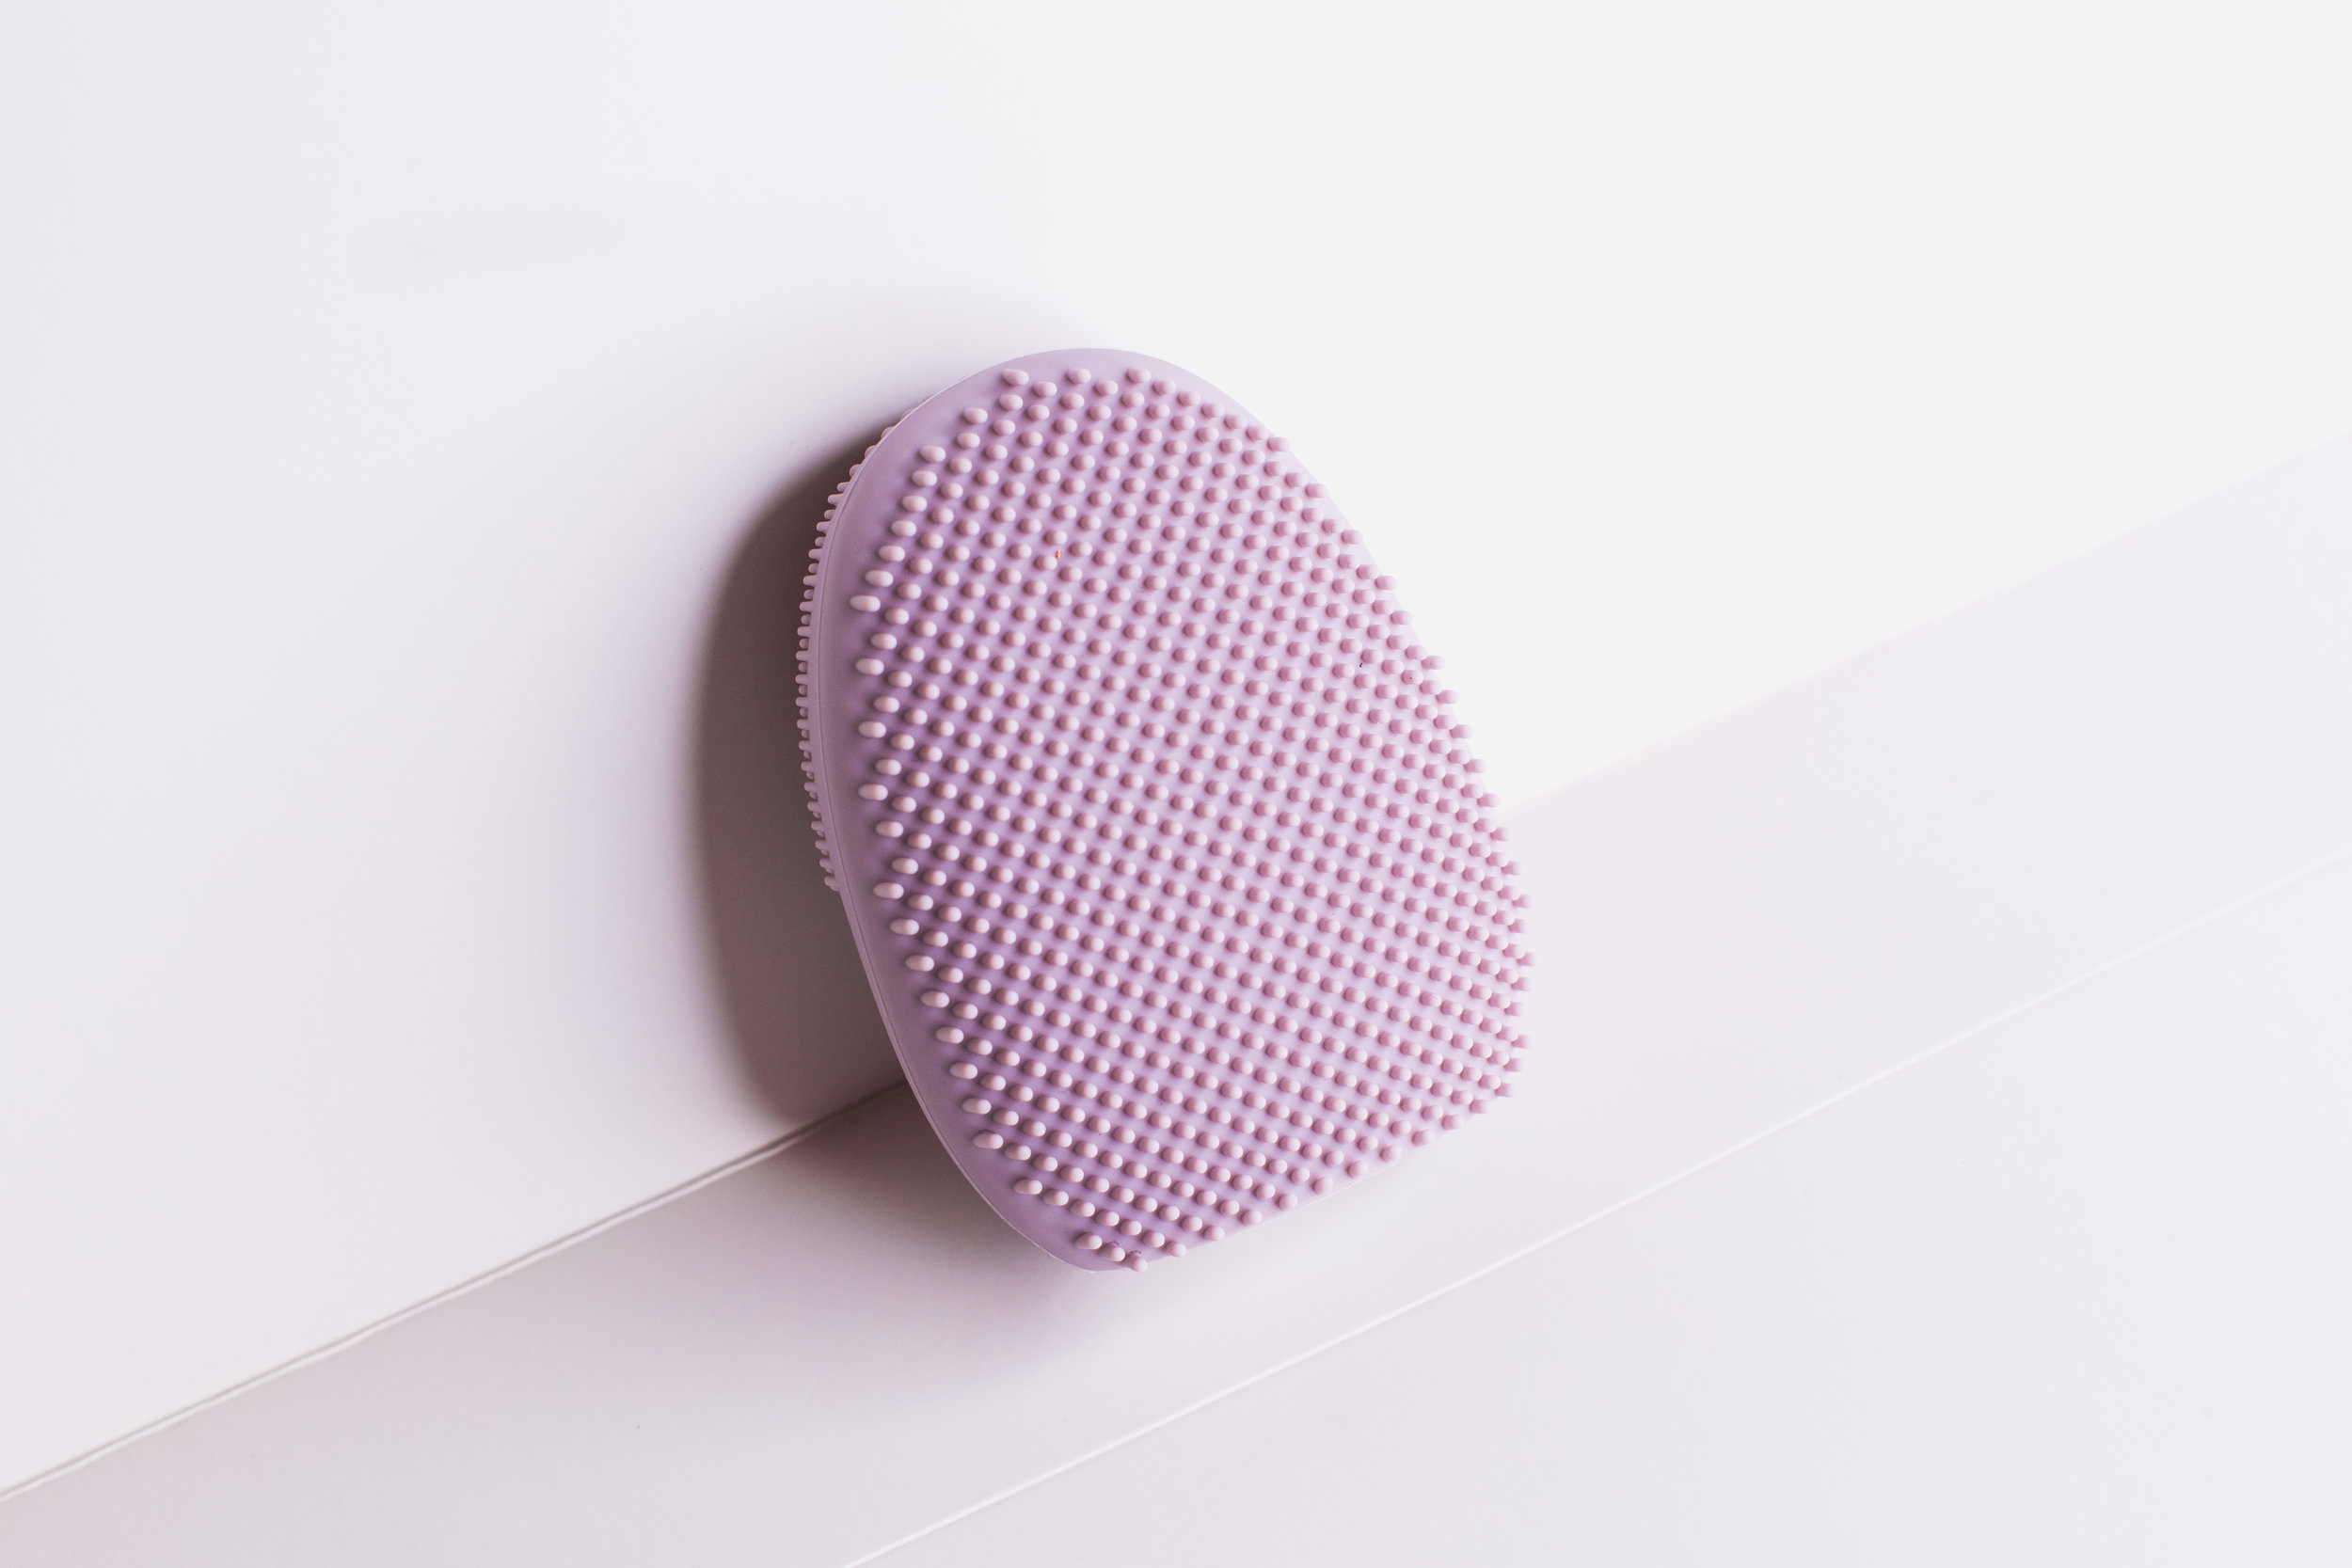 Back view of the Silicone Facial Cleanser